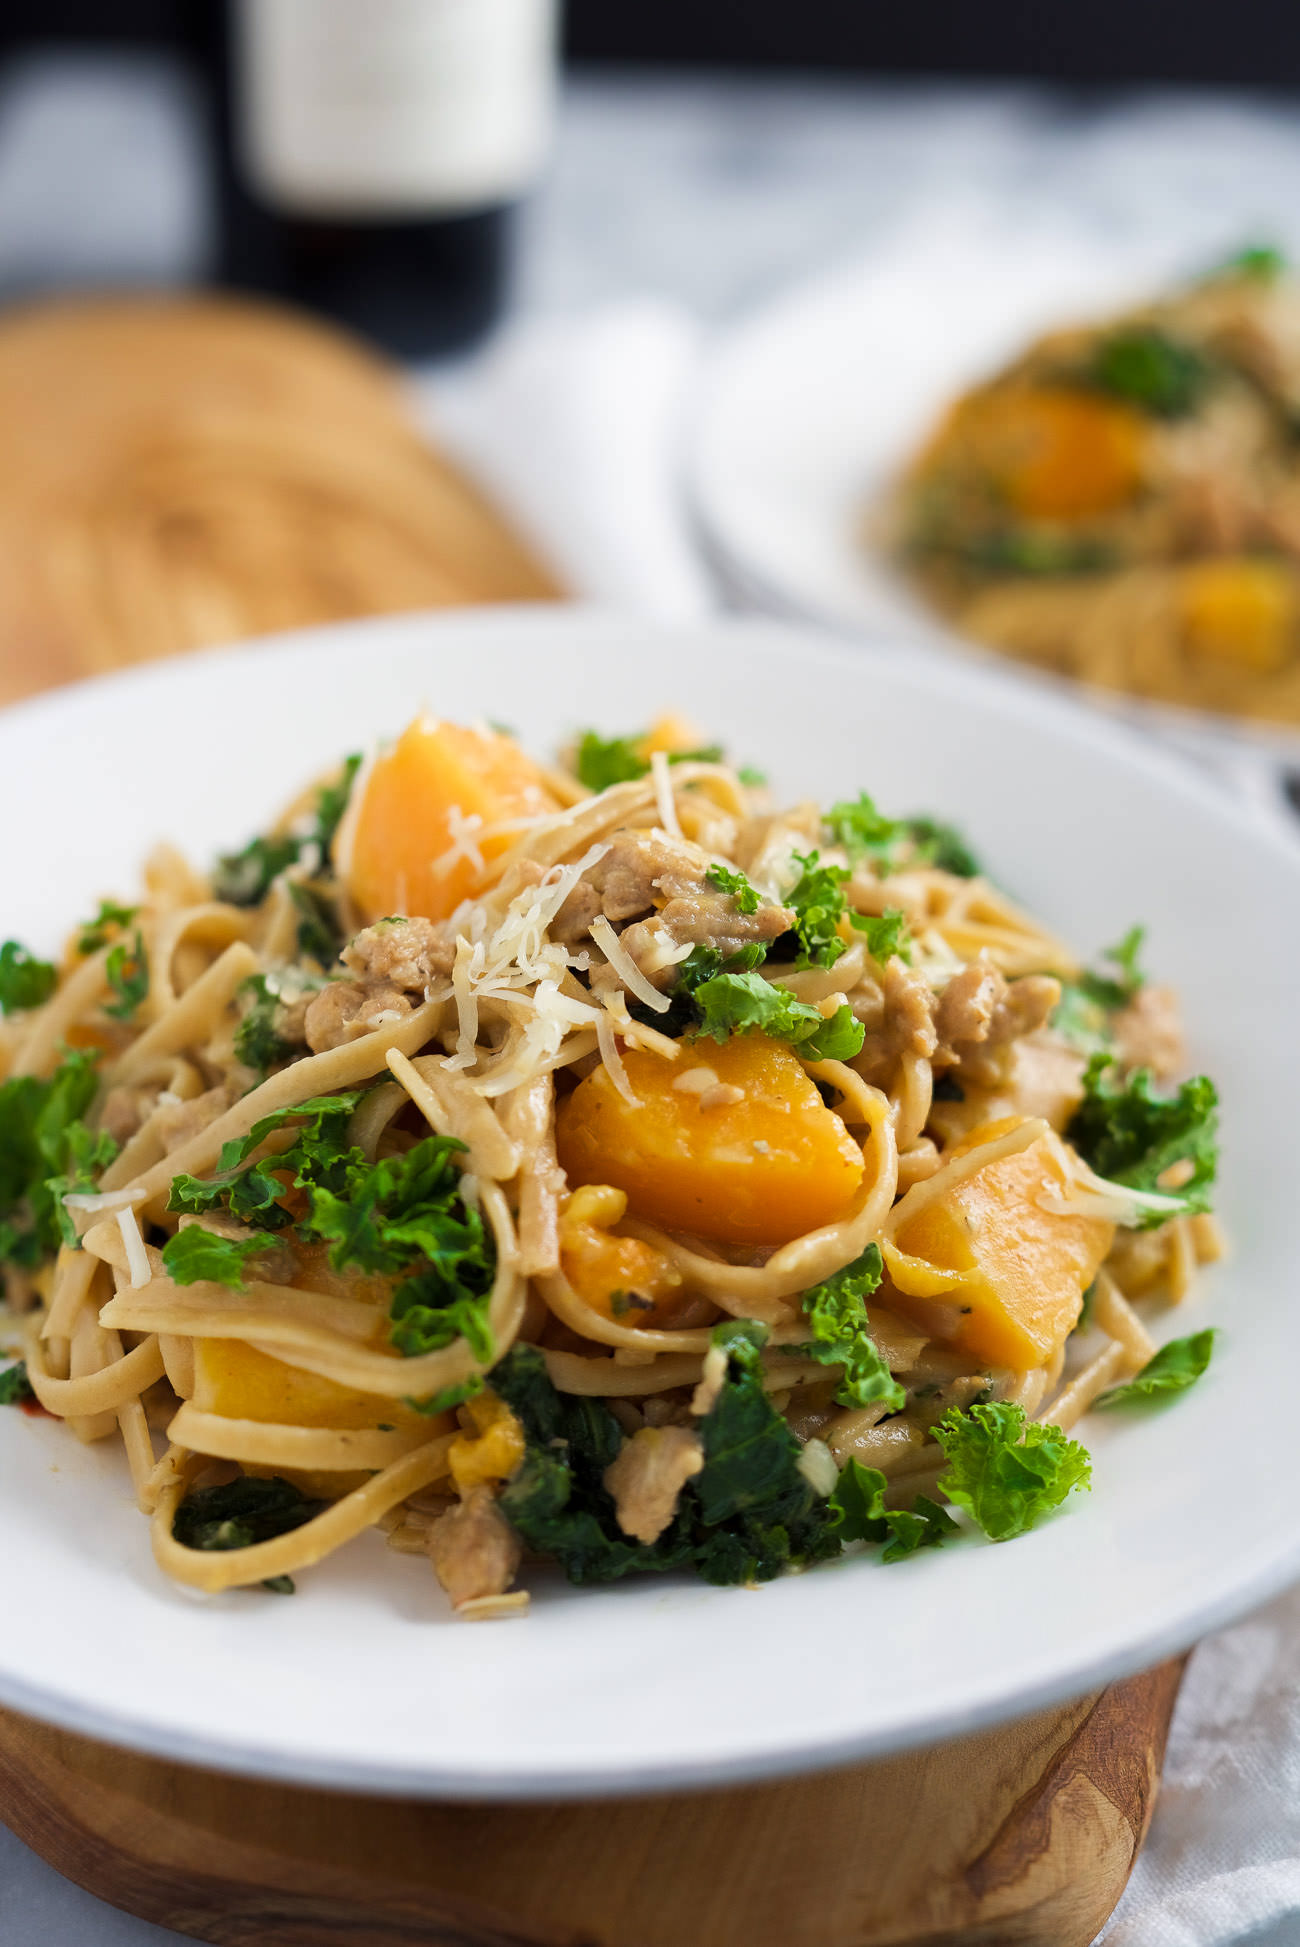 Butternut Squash Linguine Pasta is filled with whole wheat pasta, sweet Italian turkey sausage, kale, butternut squash and brought together with creamy gruyere cheese! A perfect fall dinner.